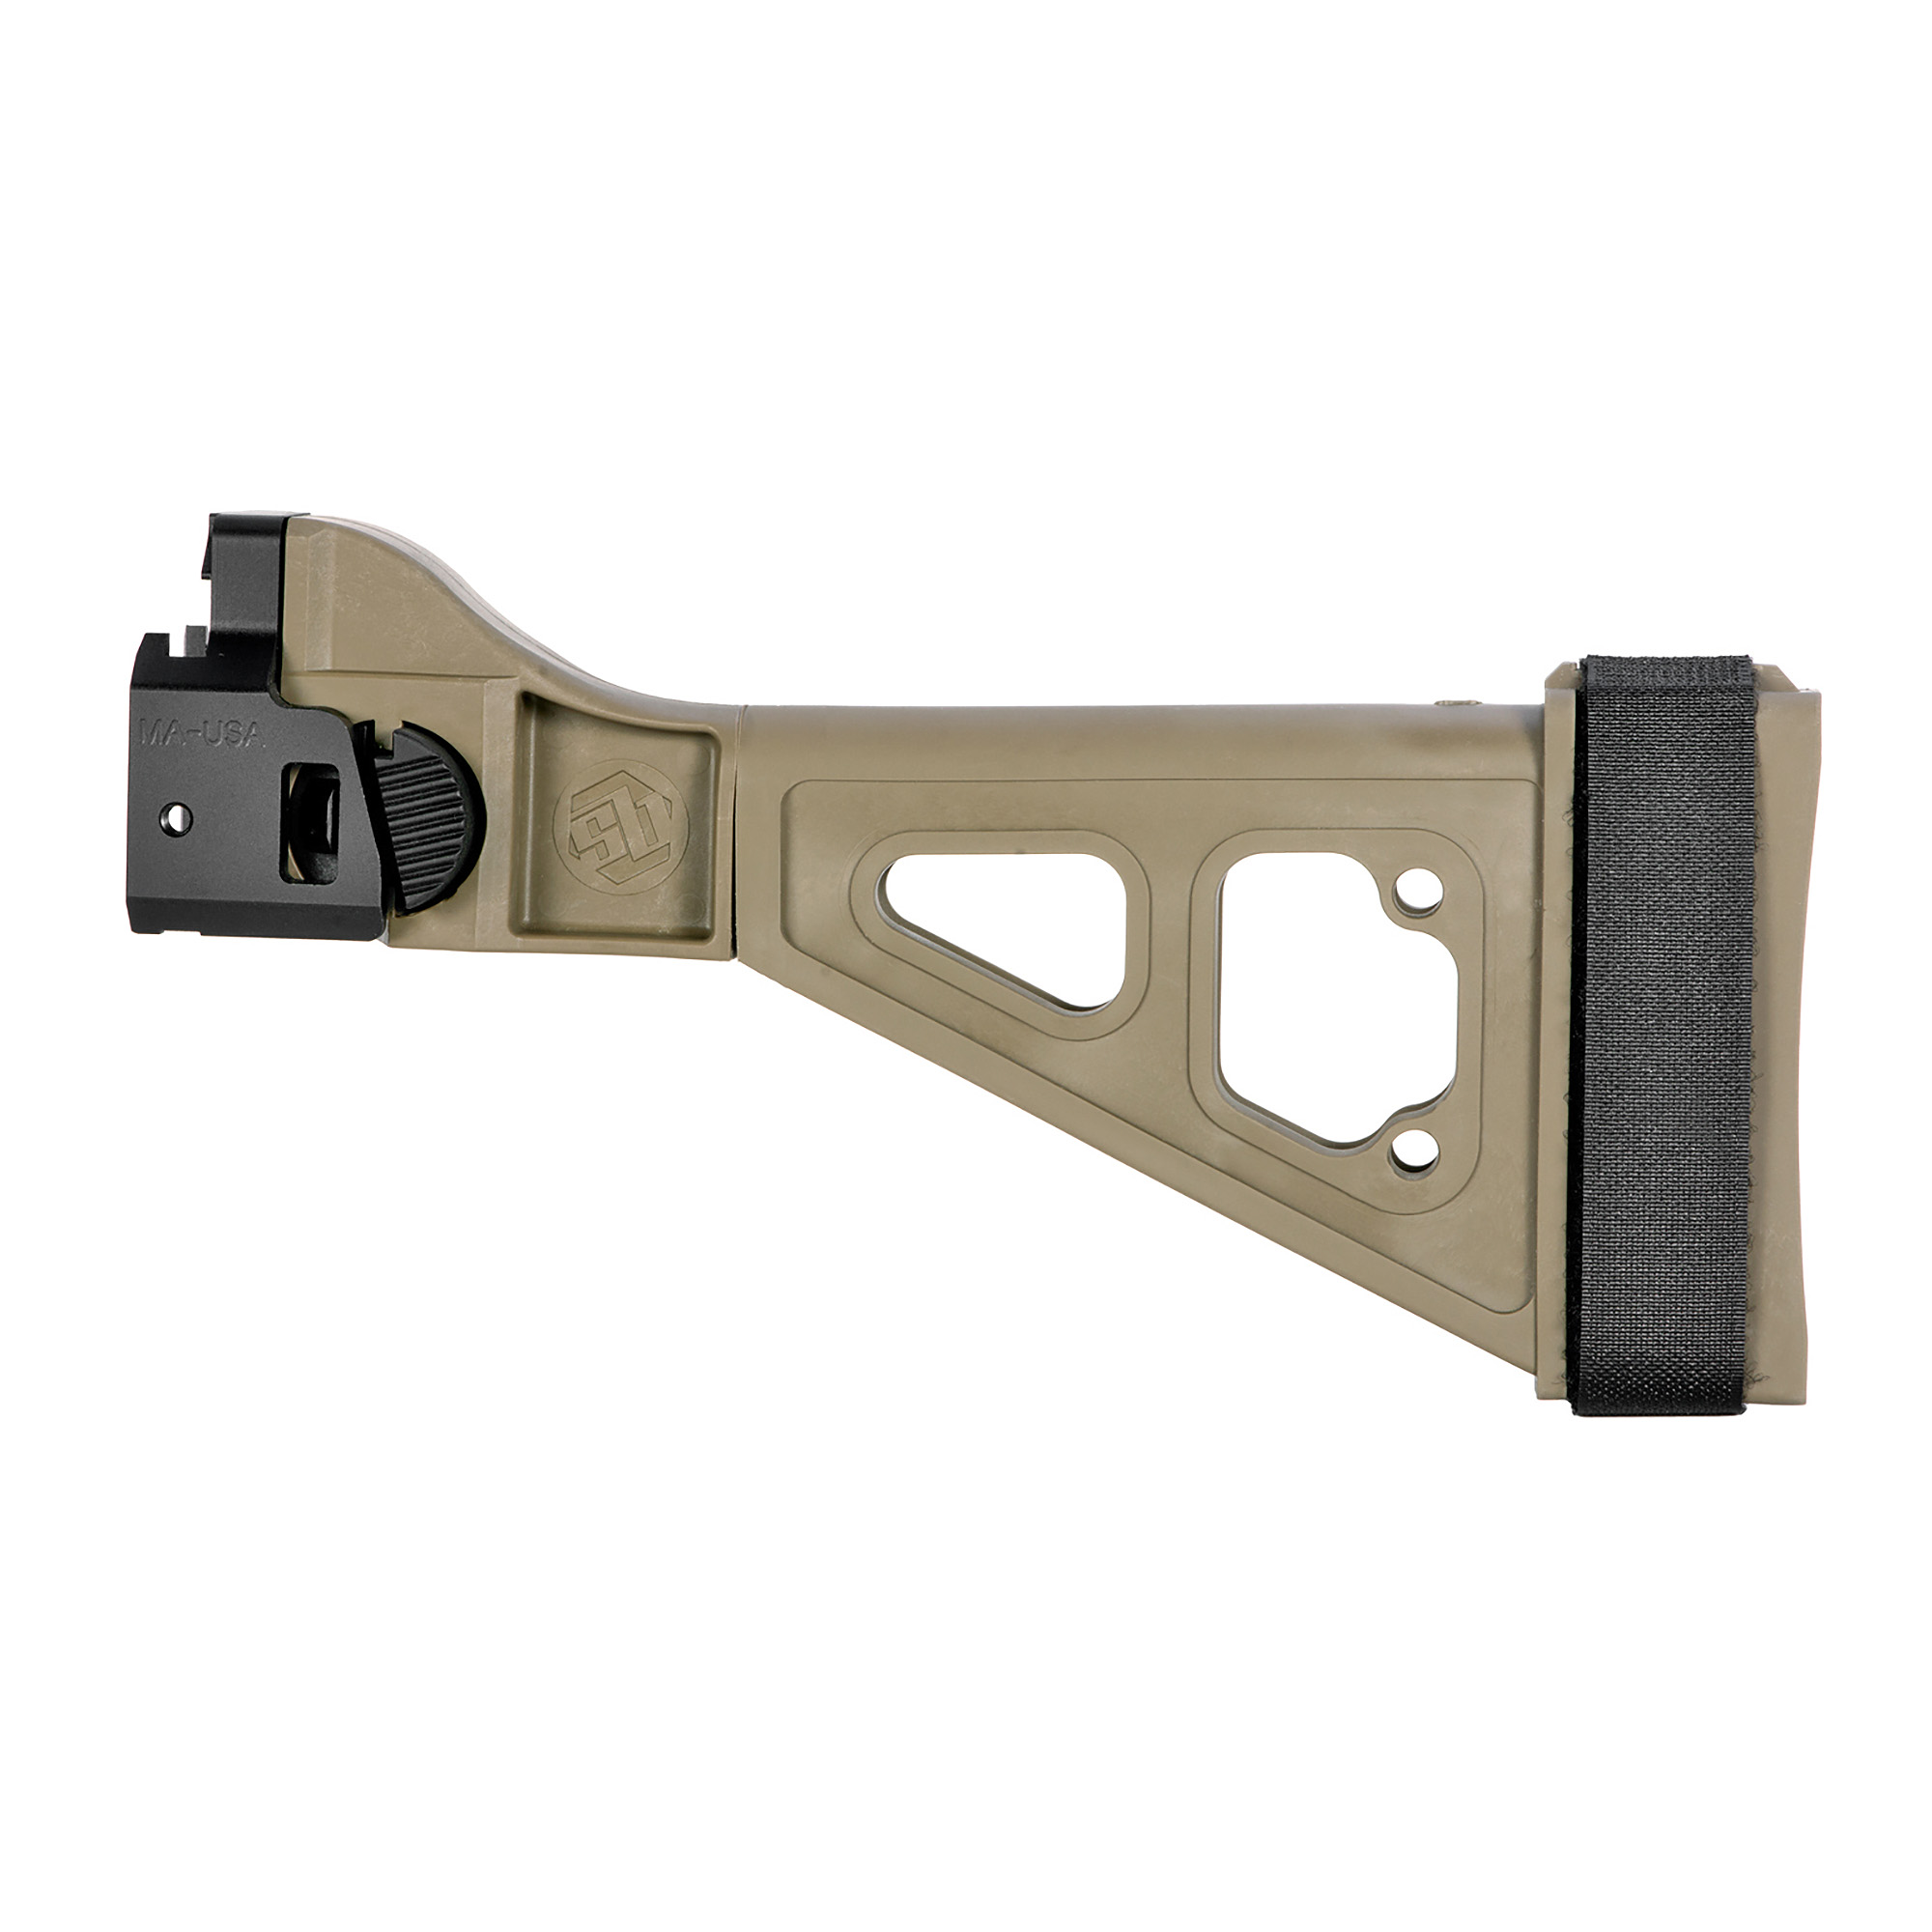 """The SBTEVO Pistol Stabilizing Brace was inspired by the iconic B&T design for HK platforms. Featuring an integral"""" side-folding mechanism"""" the SBTEVO fits the CZ Scorpion Evo. Includes an adjustable nylon strap."""